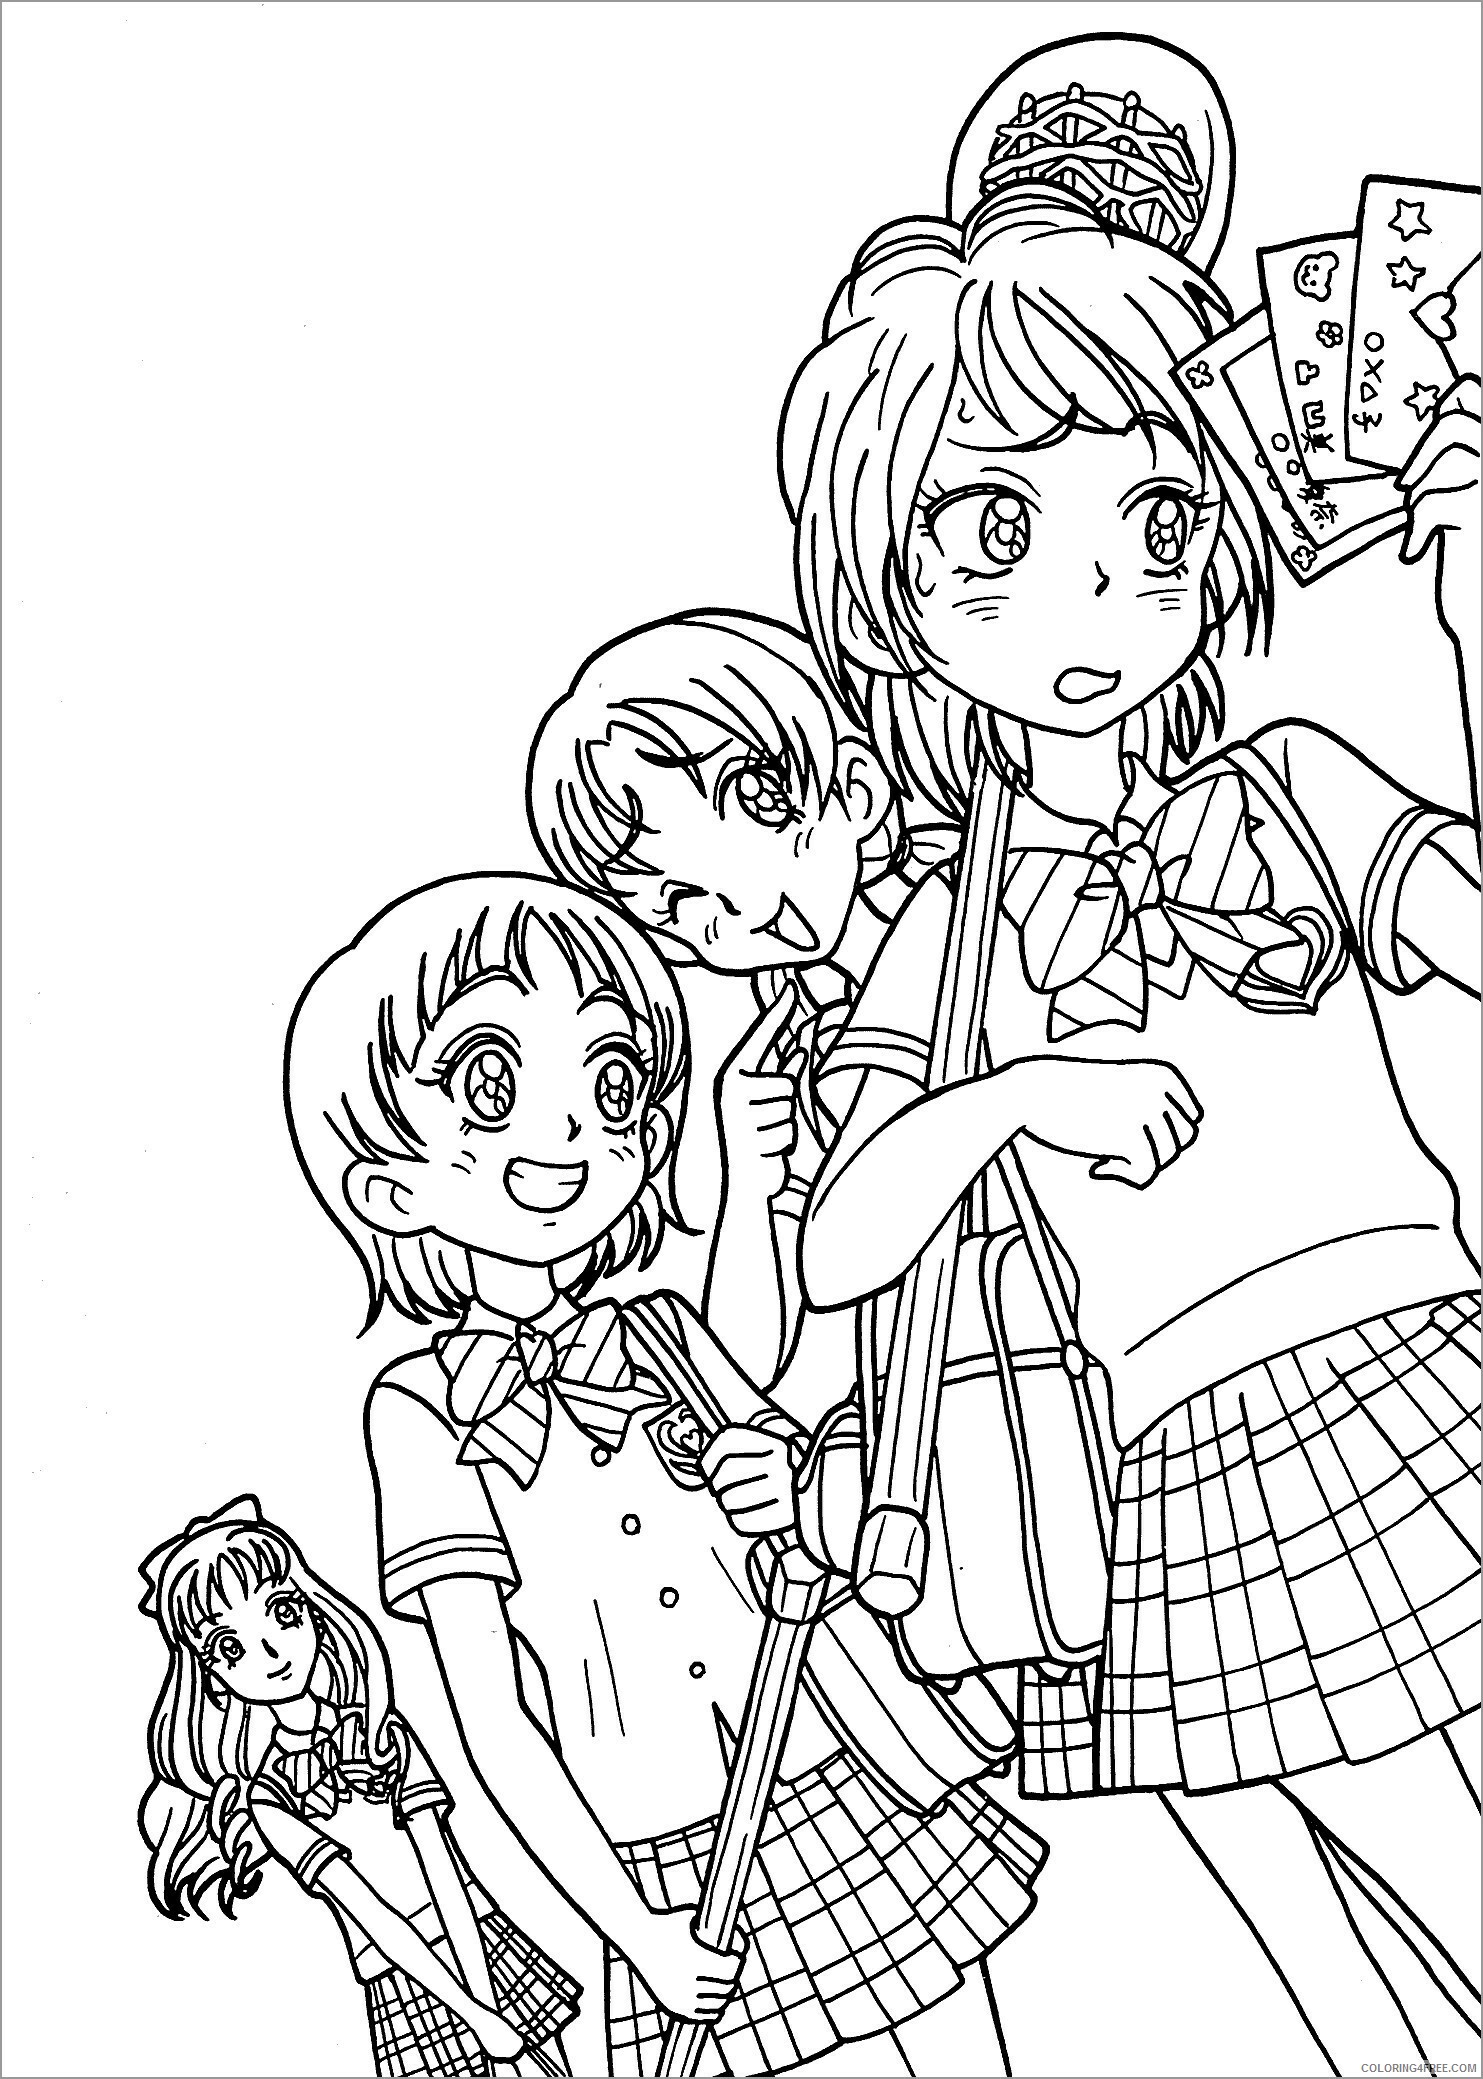 Adult Coloring Pages girls anime for adults Printable 2020 030 Coloring4free